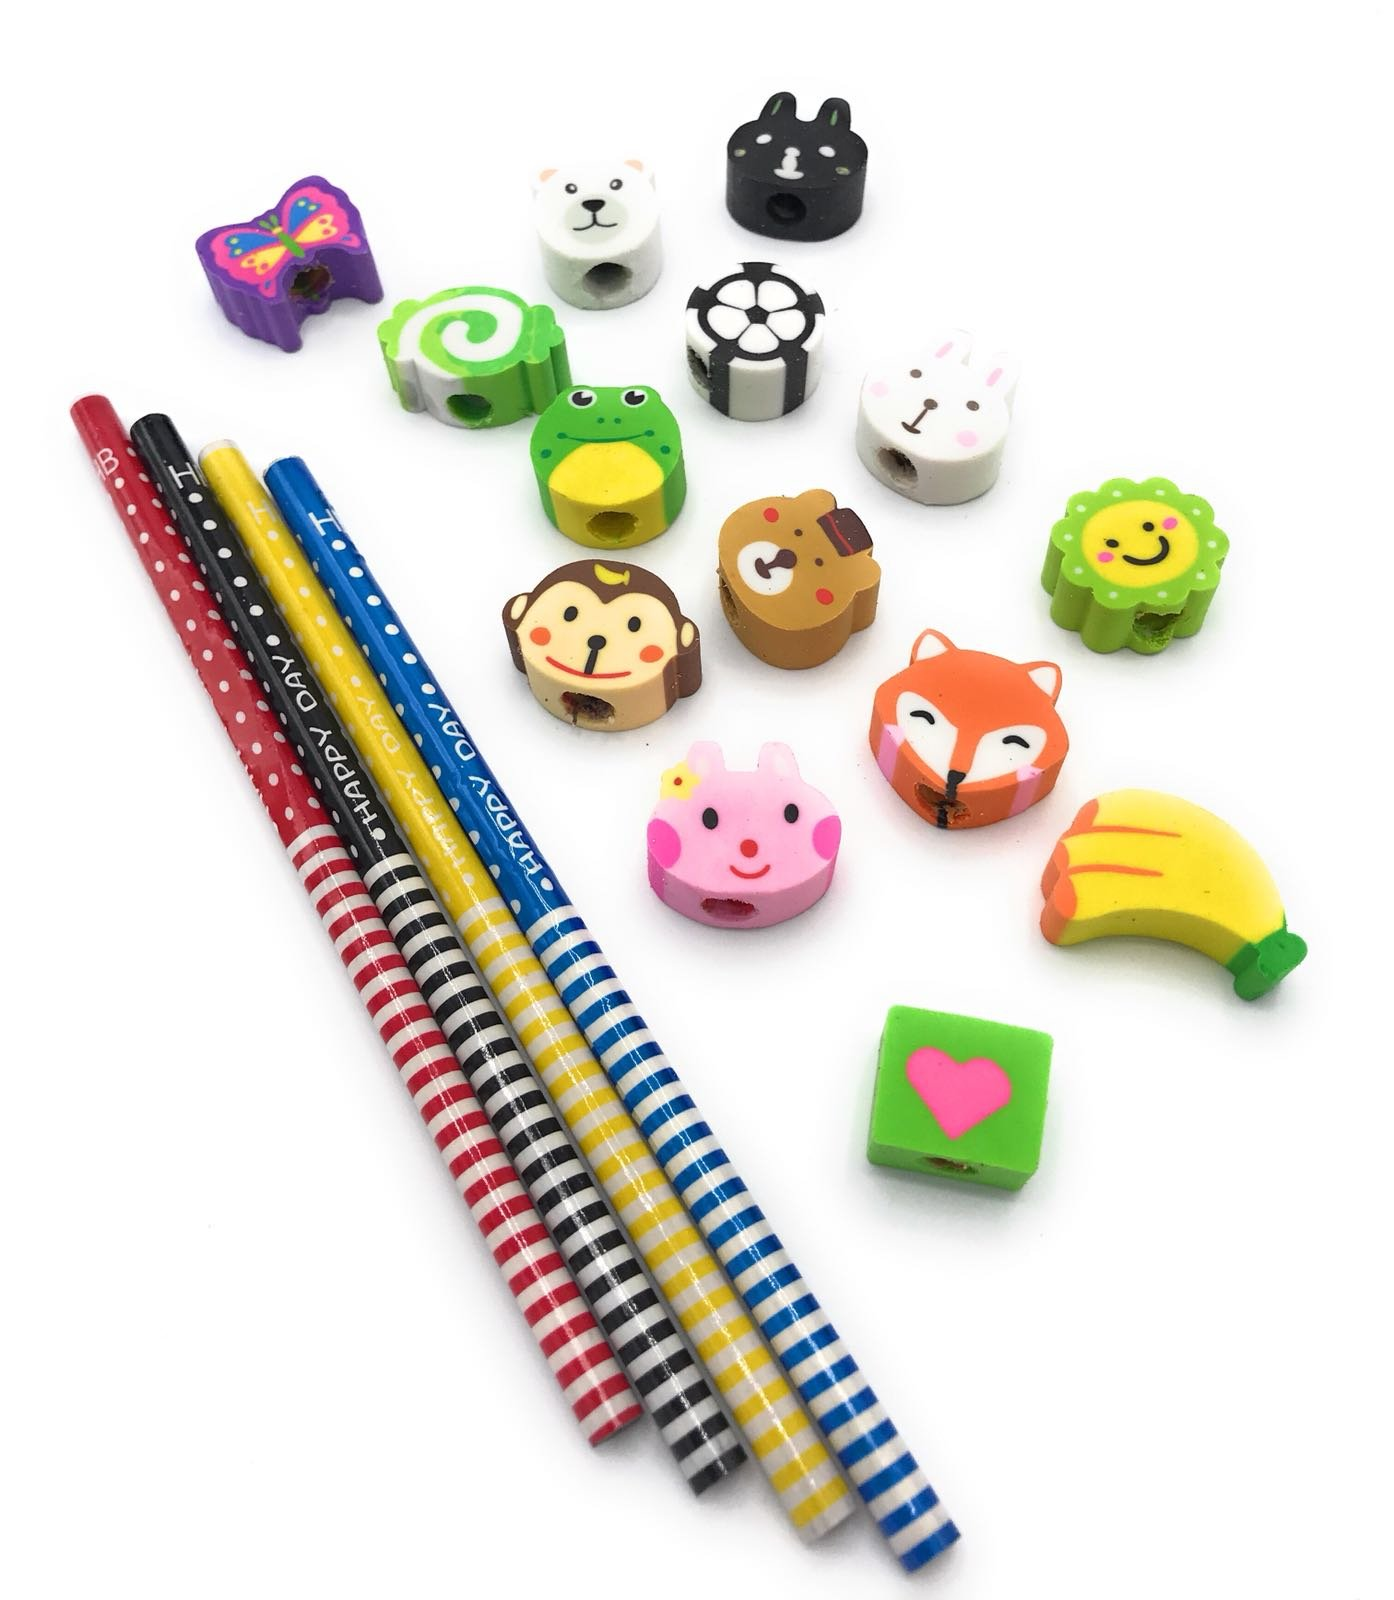 Gennilo Pack of 40 Pencils with Erasers Colorful Novelty Cartoon Animals' Stripe Eraser Wood Pencils (7.28'') for Students & Children Gift (40pcs cartoon pencil with eraser), Animals Assorted by Gennilo (Image #4)